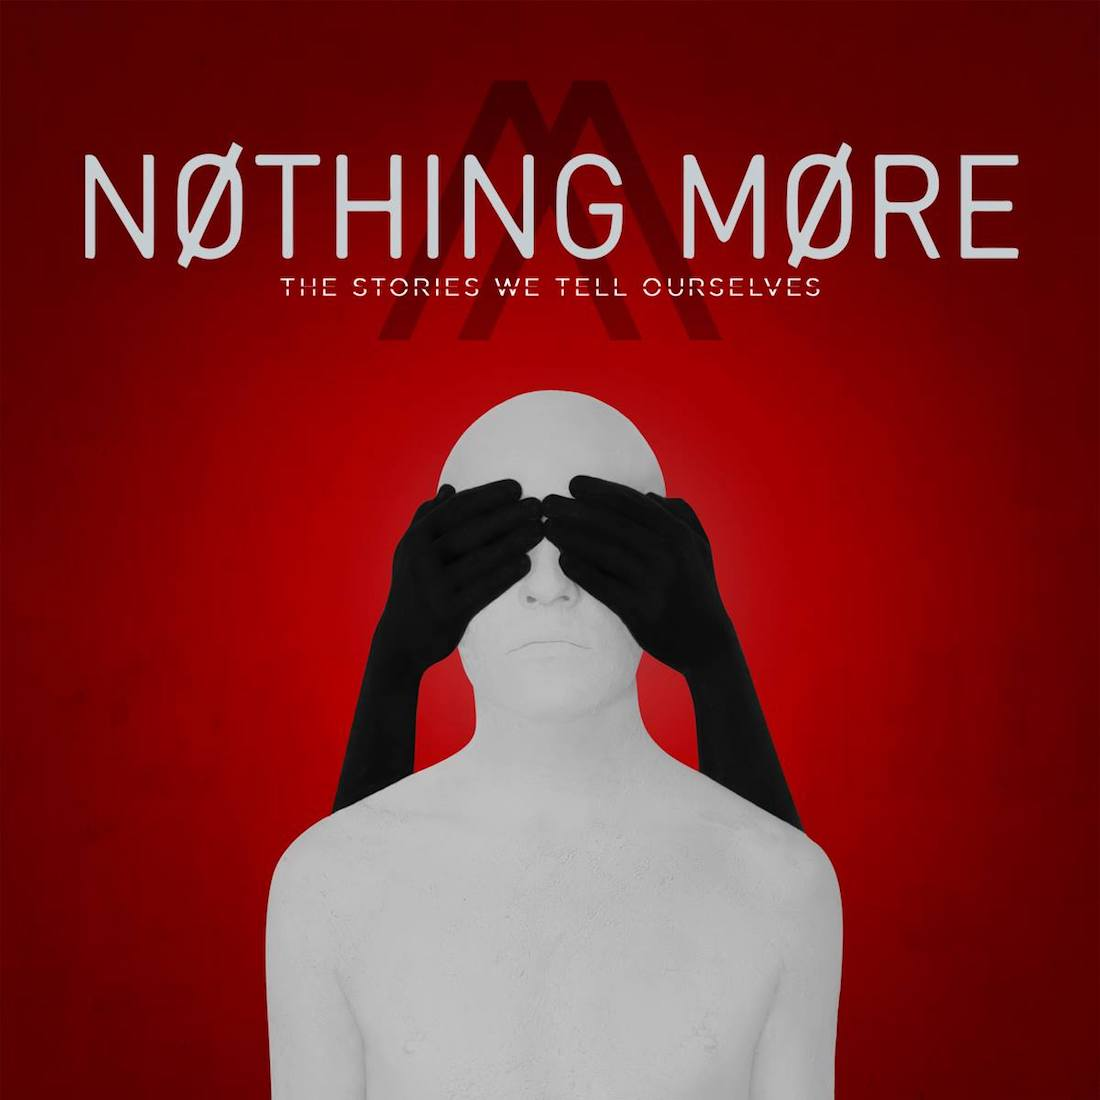 NOTHING MORE - The Stories We Tell Ourselves Tour 2017